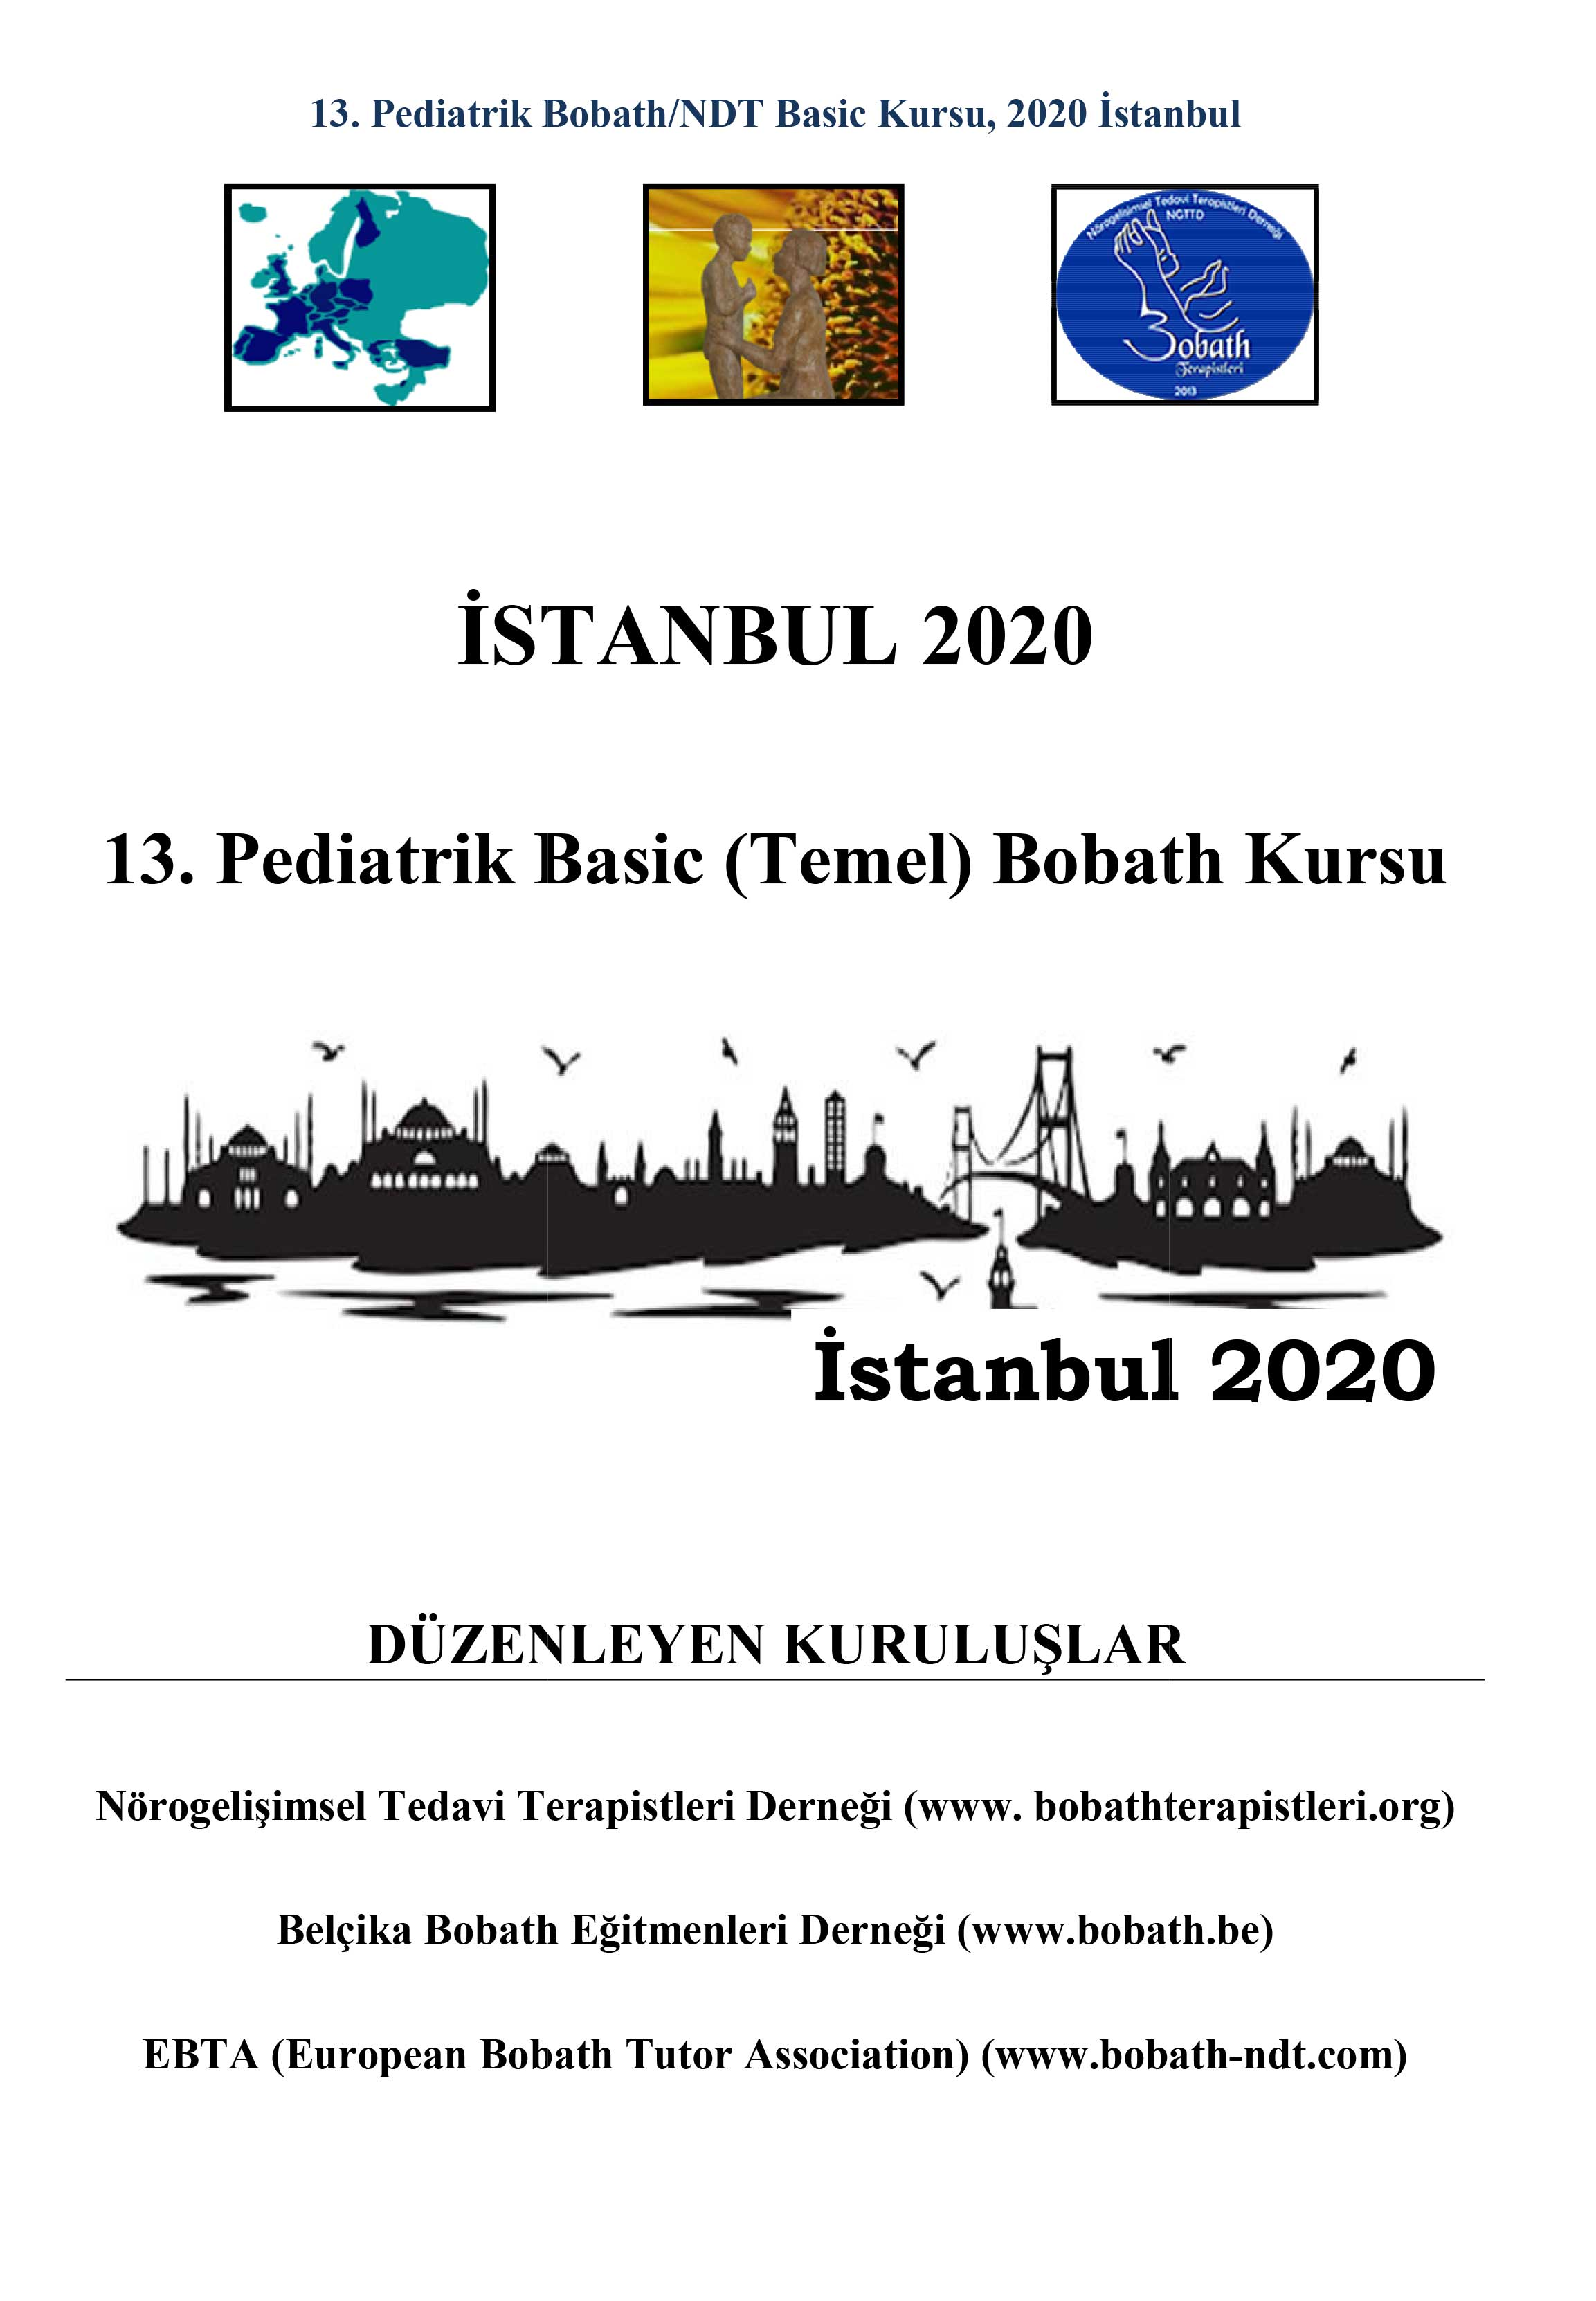 13. Pediatrik Bobath/NDT Basic Kursu